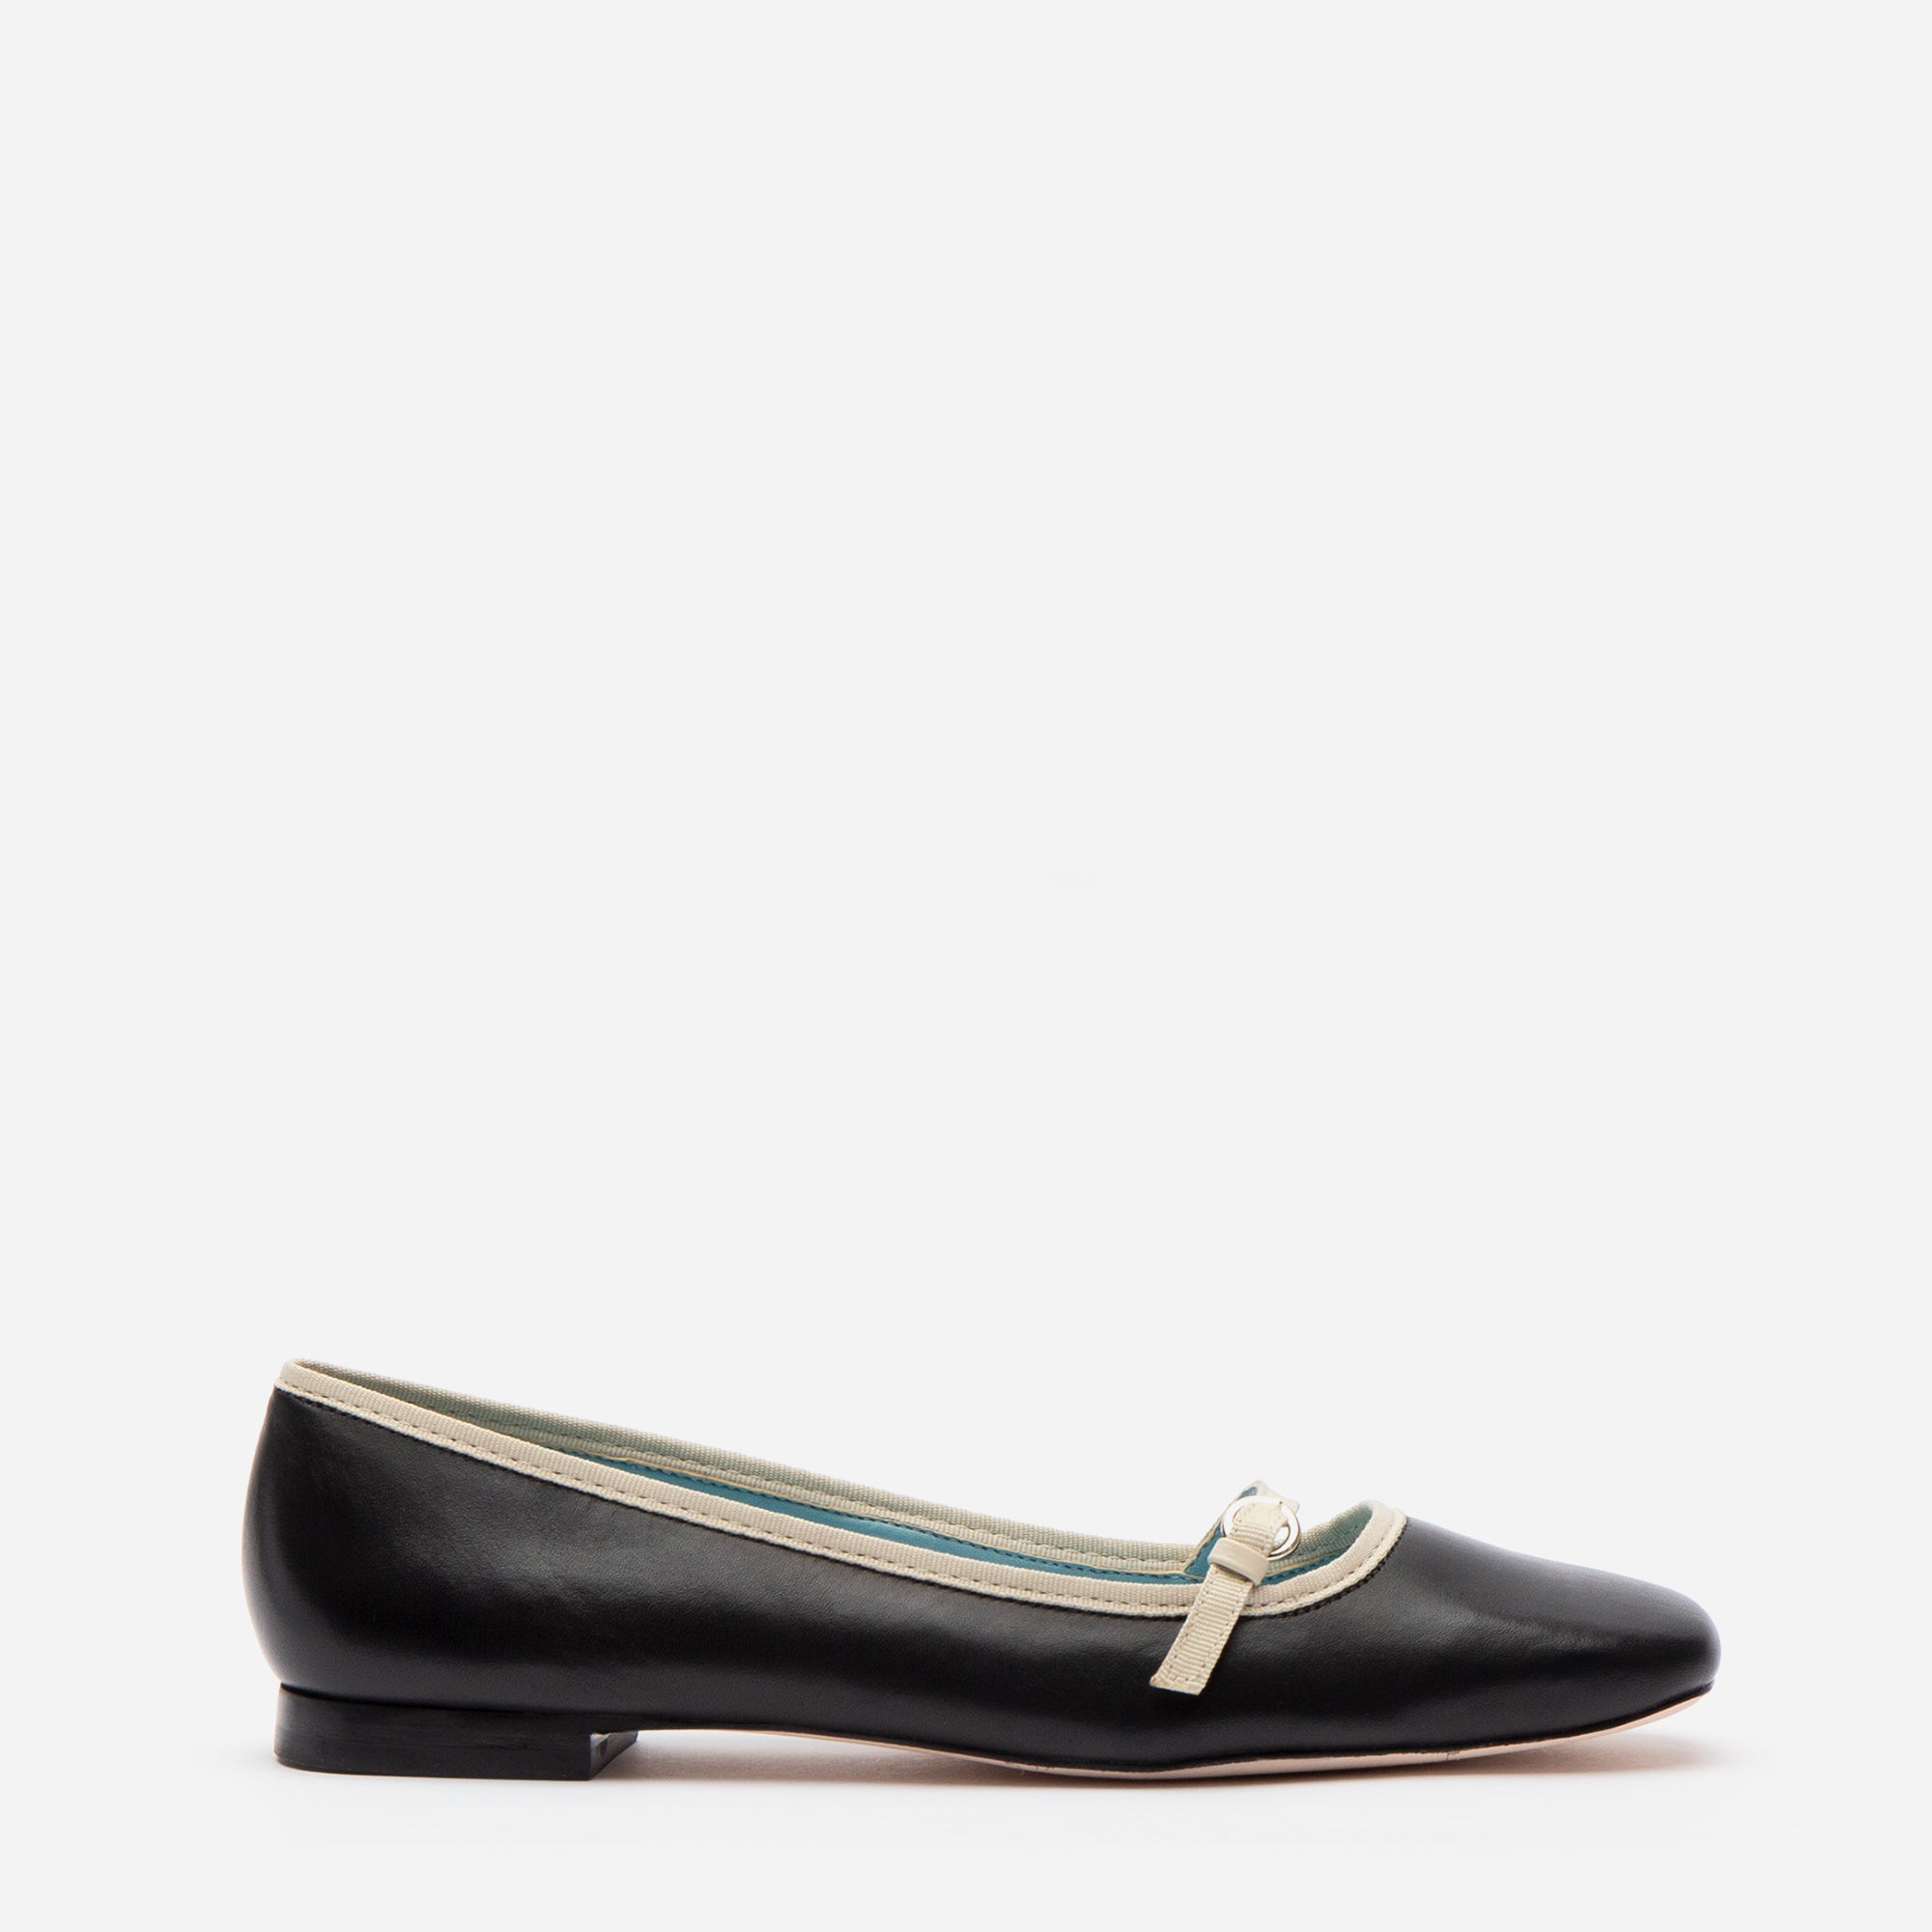 Josie Leather Flat Black Oyster